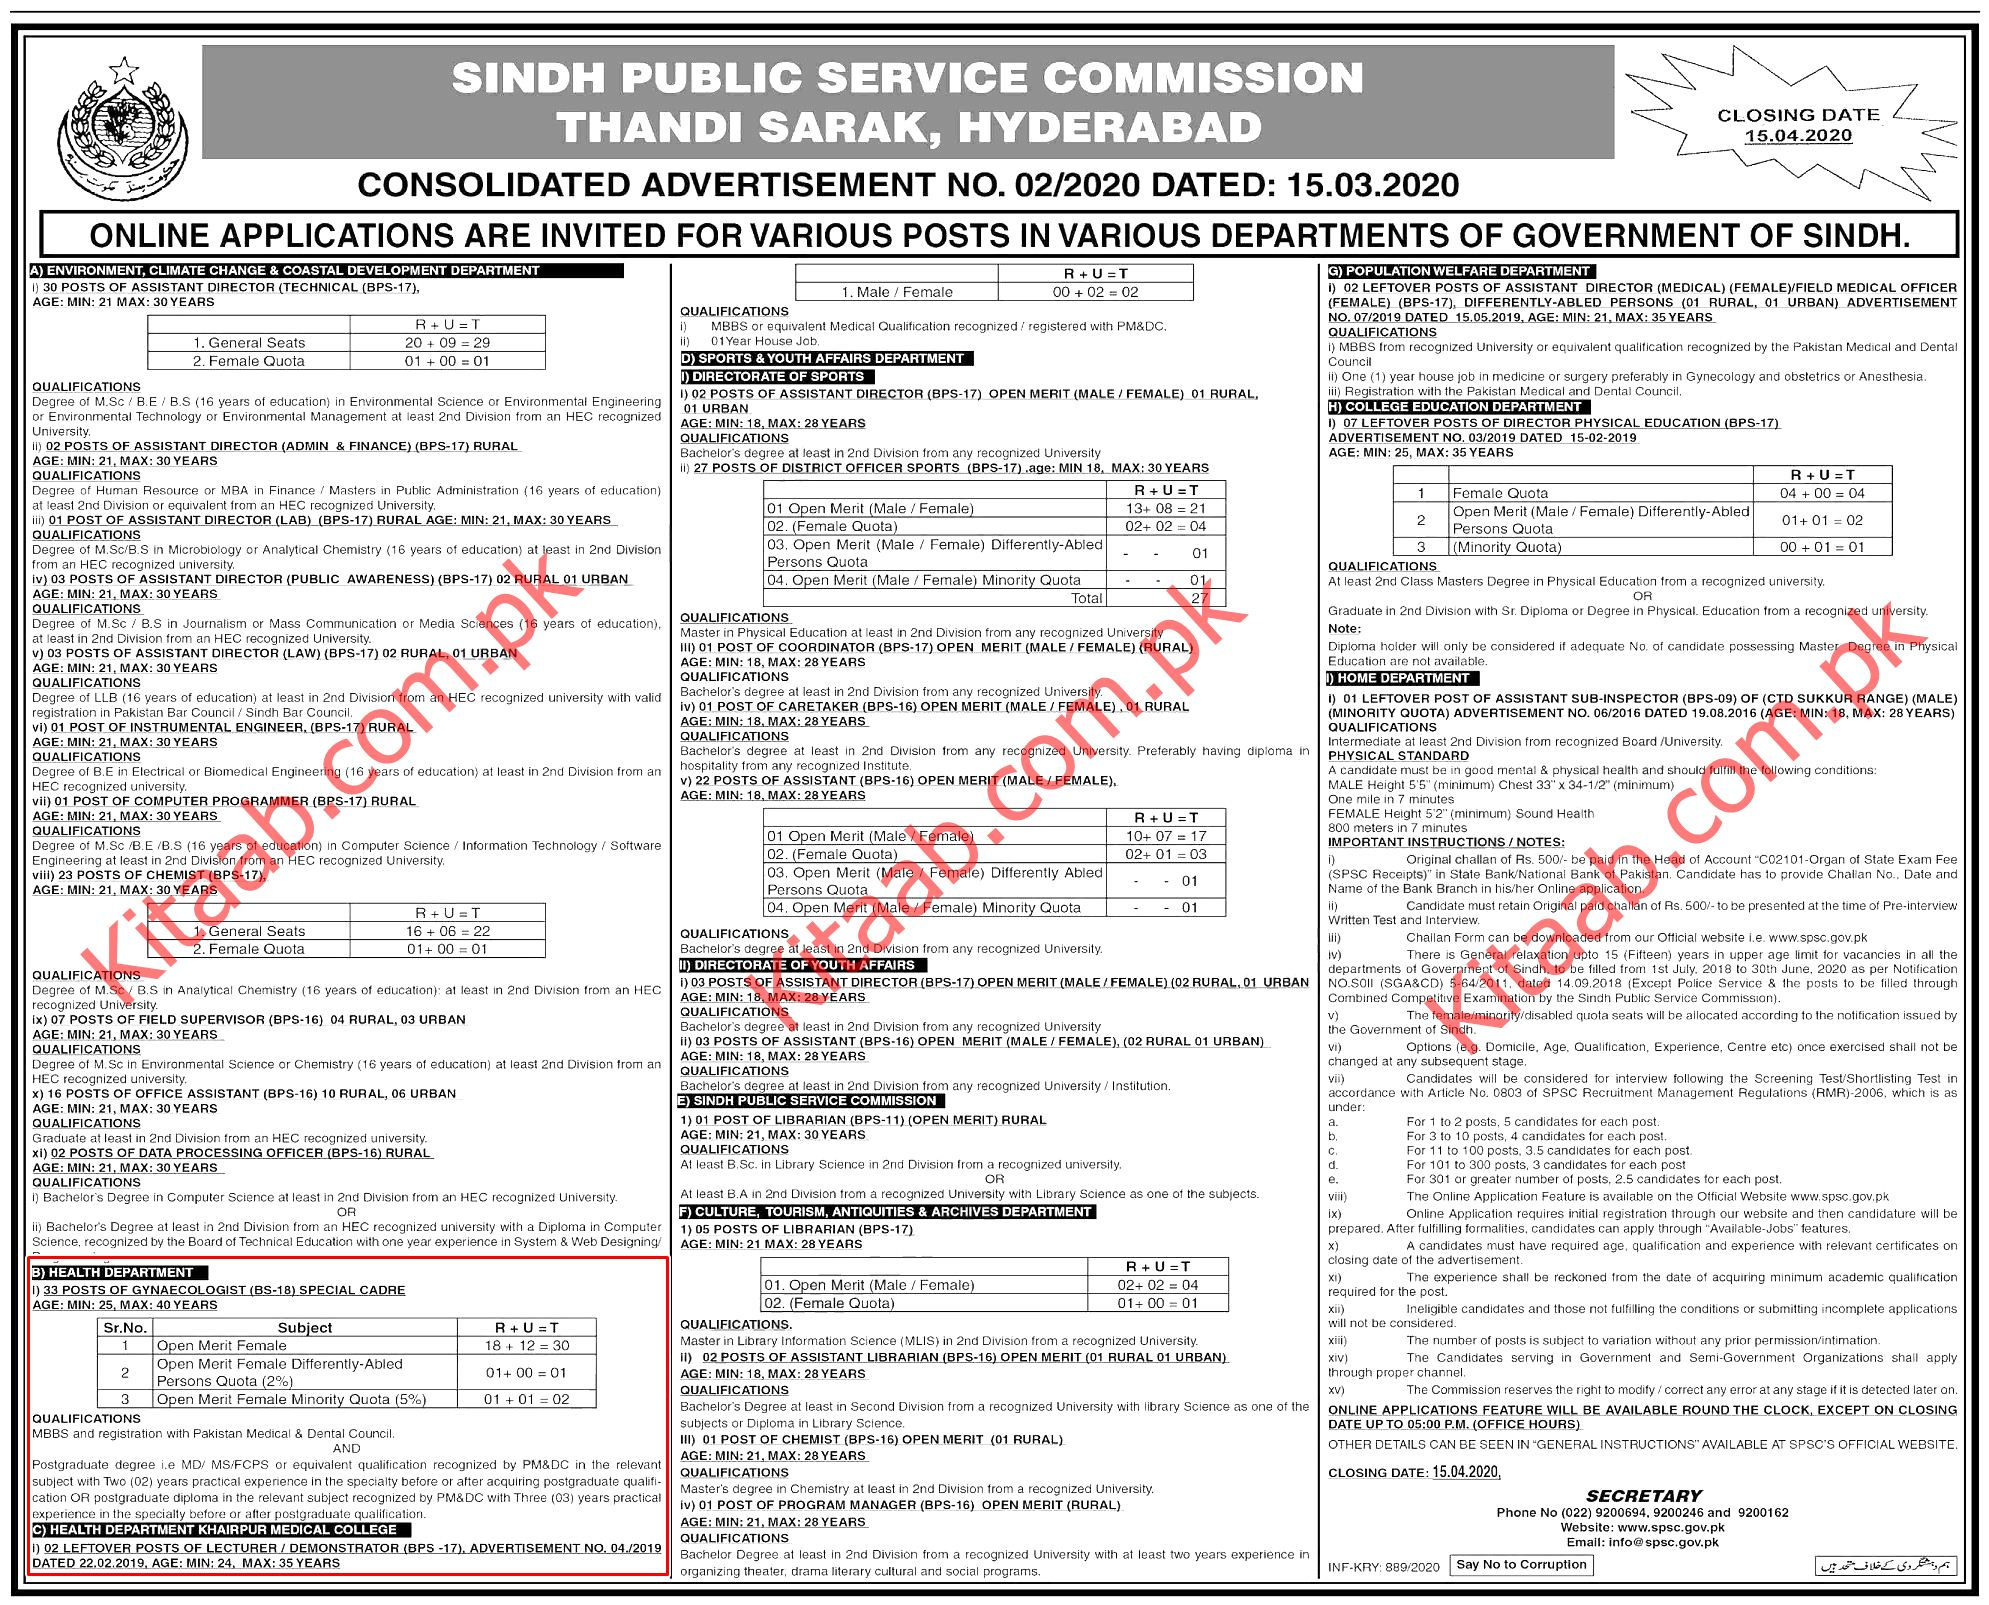 Latest SPSC Jobs 2021 in Pakistan Sindh Public Service Commission Apply Online